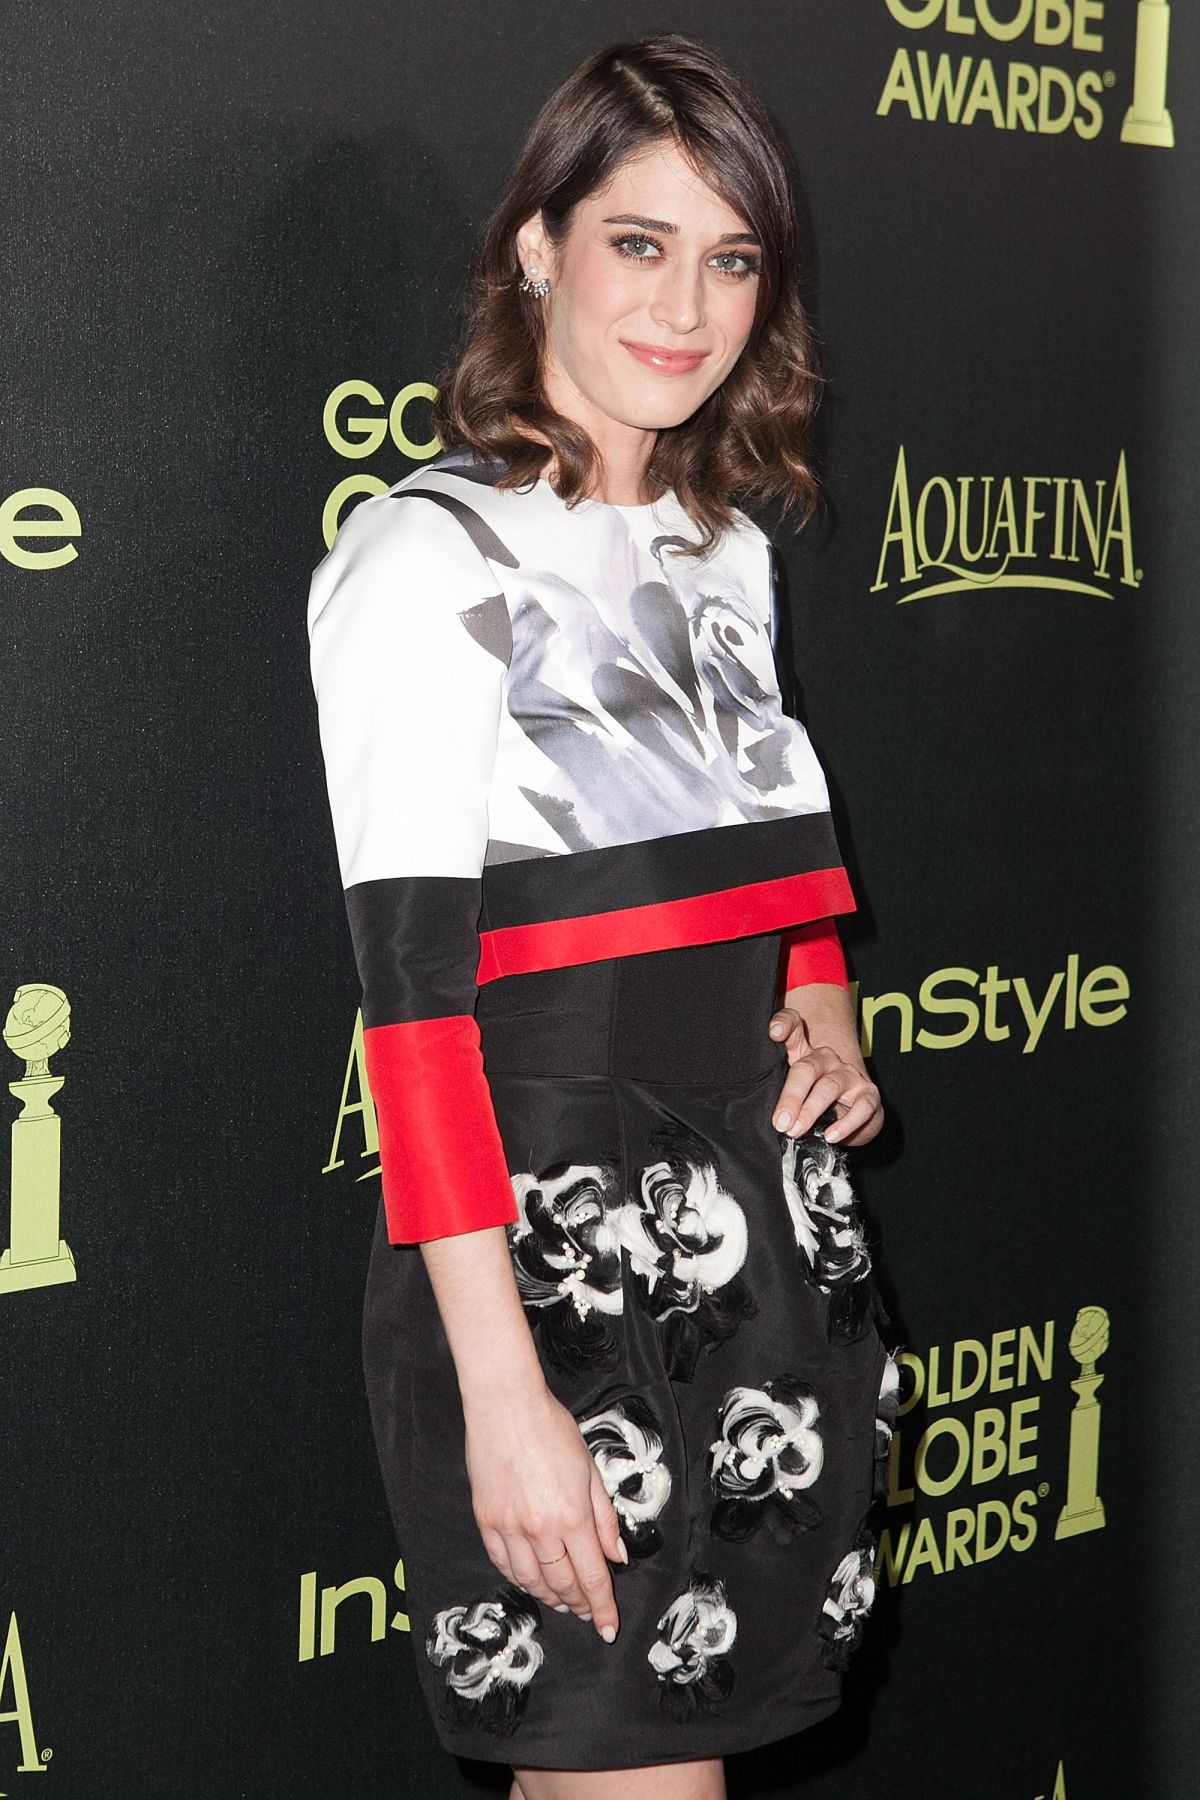 lizzy-caplan-appear-at-hfpa-instyle-celebrate-the-2015-golden-globe-award-season-in-west-hollywood_6